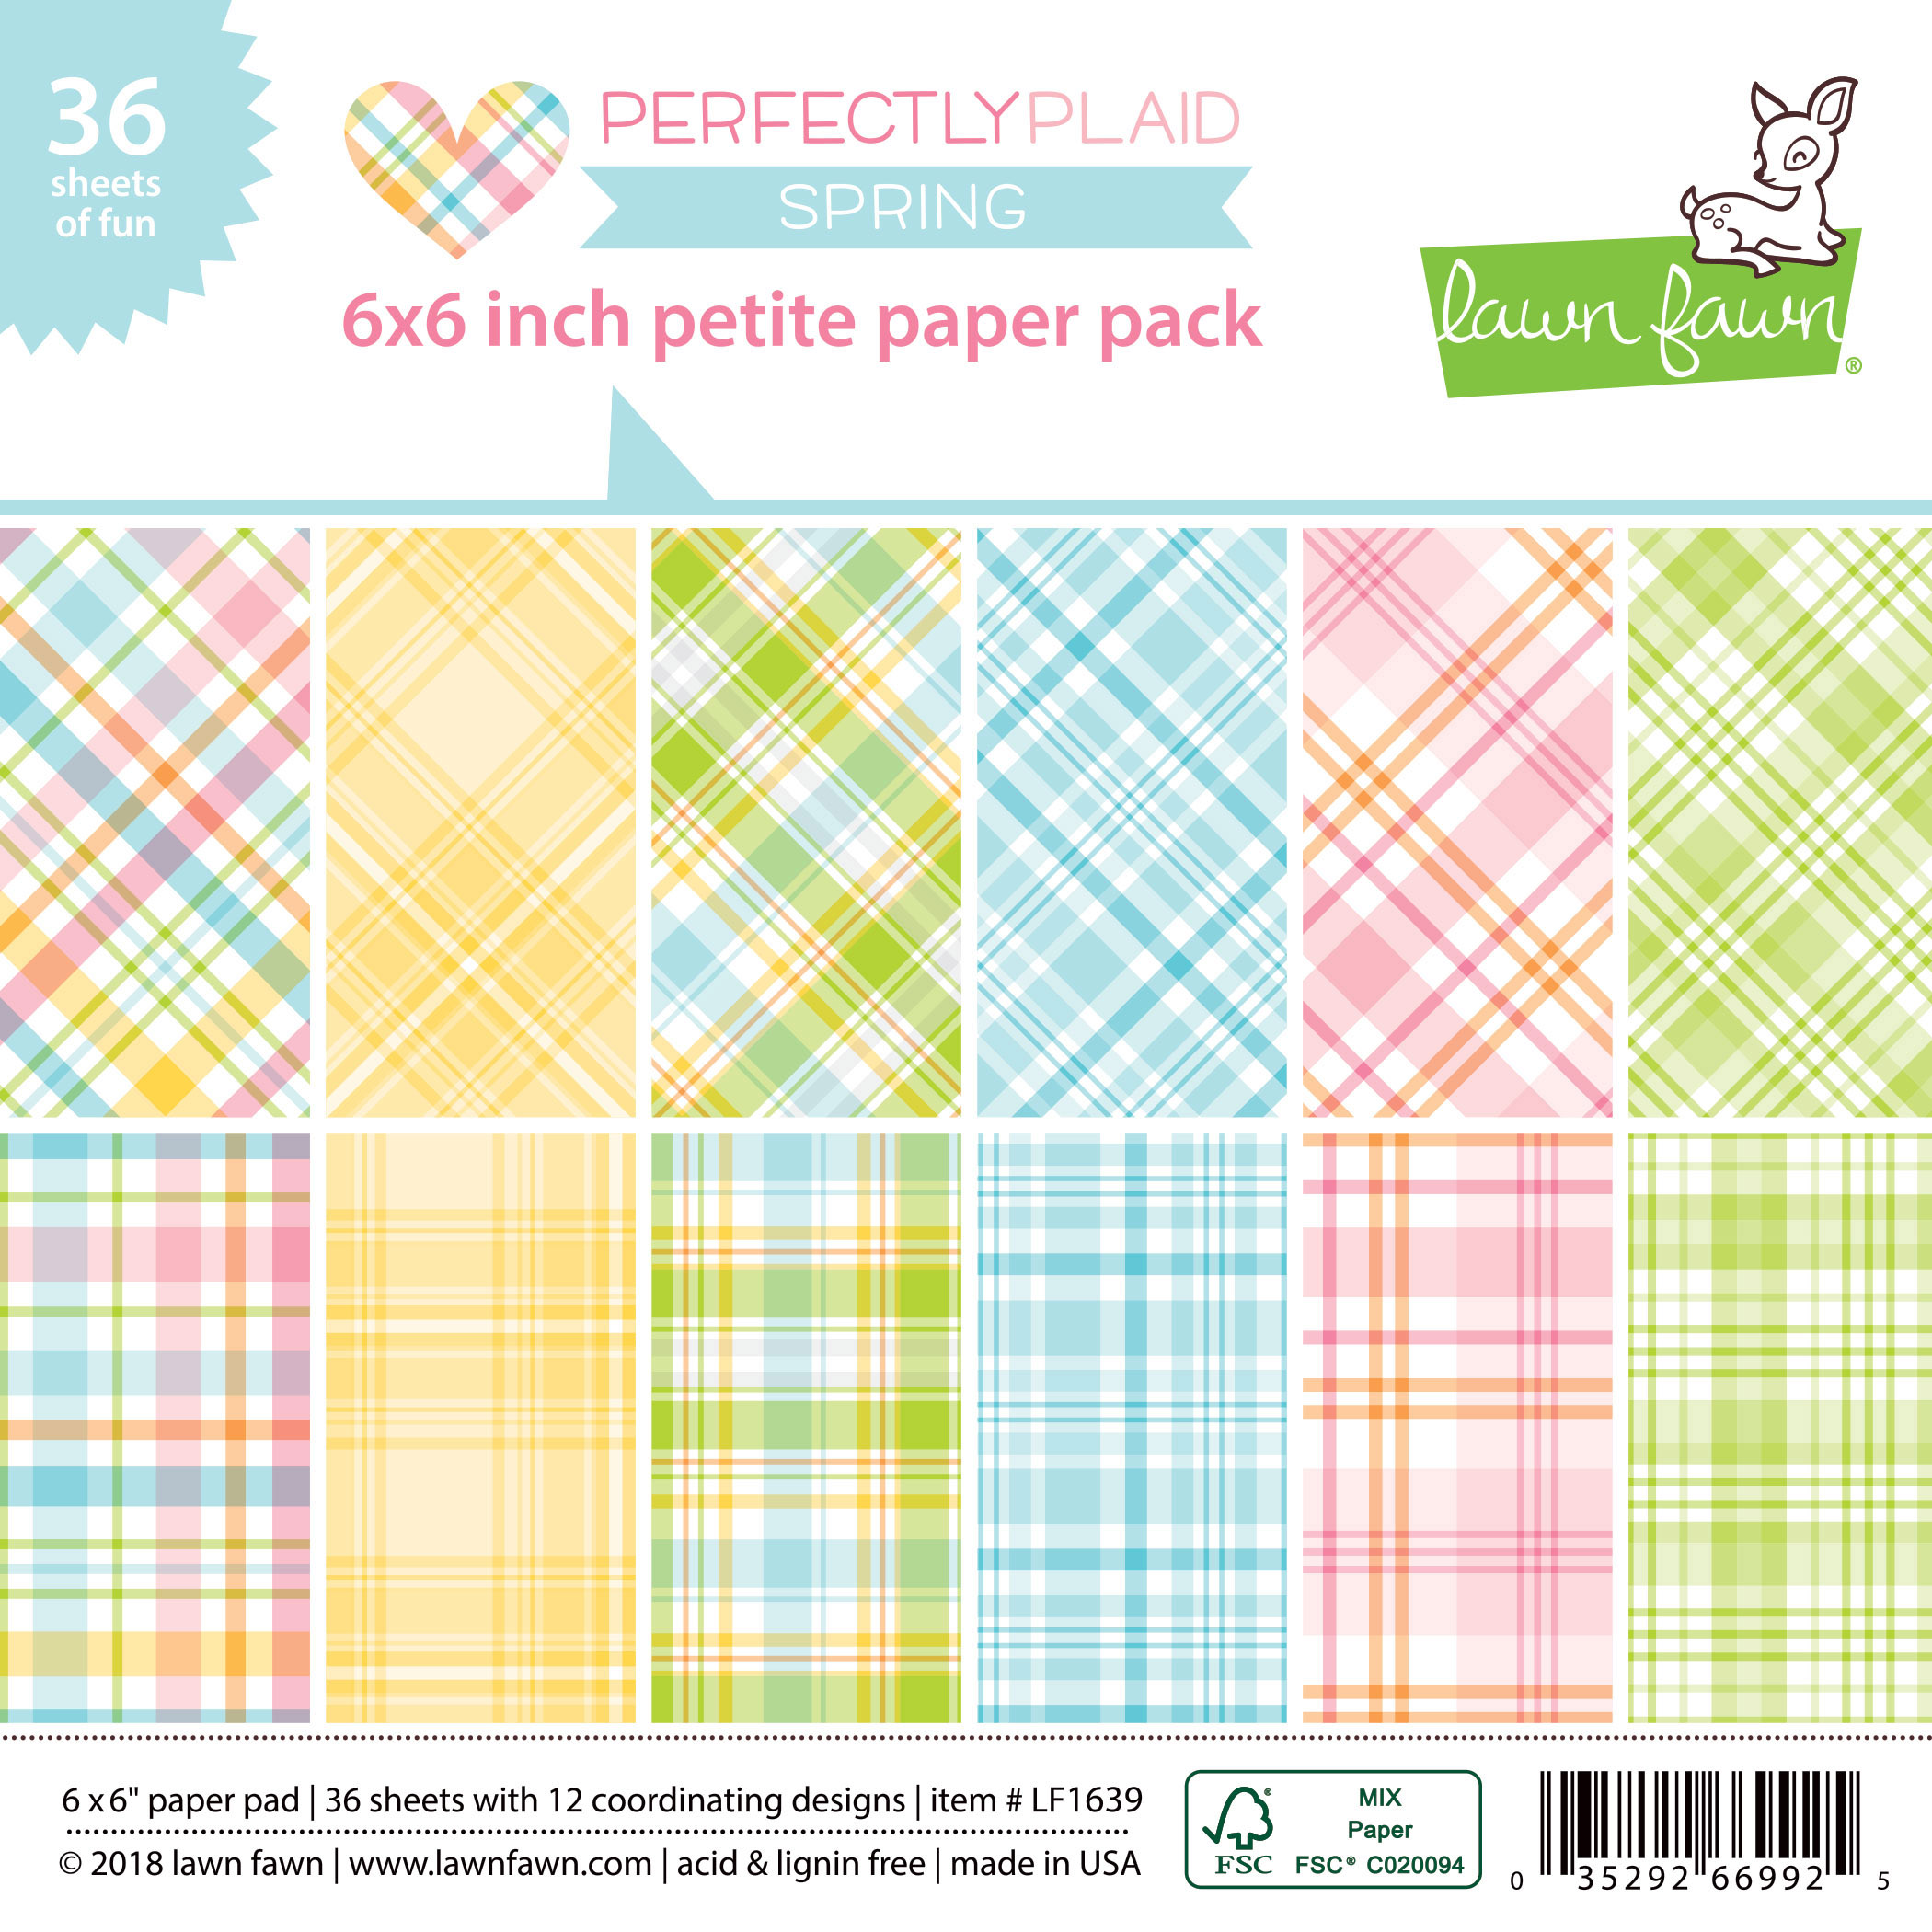 Lawn Fawn - perfectly plaid spring petite paper pack